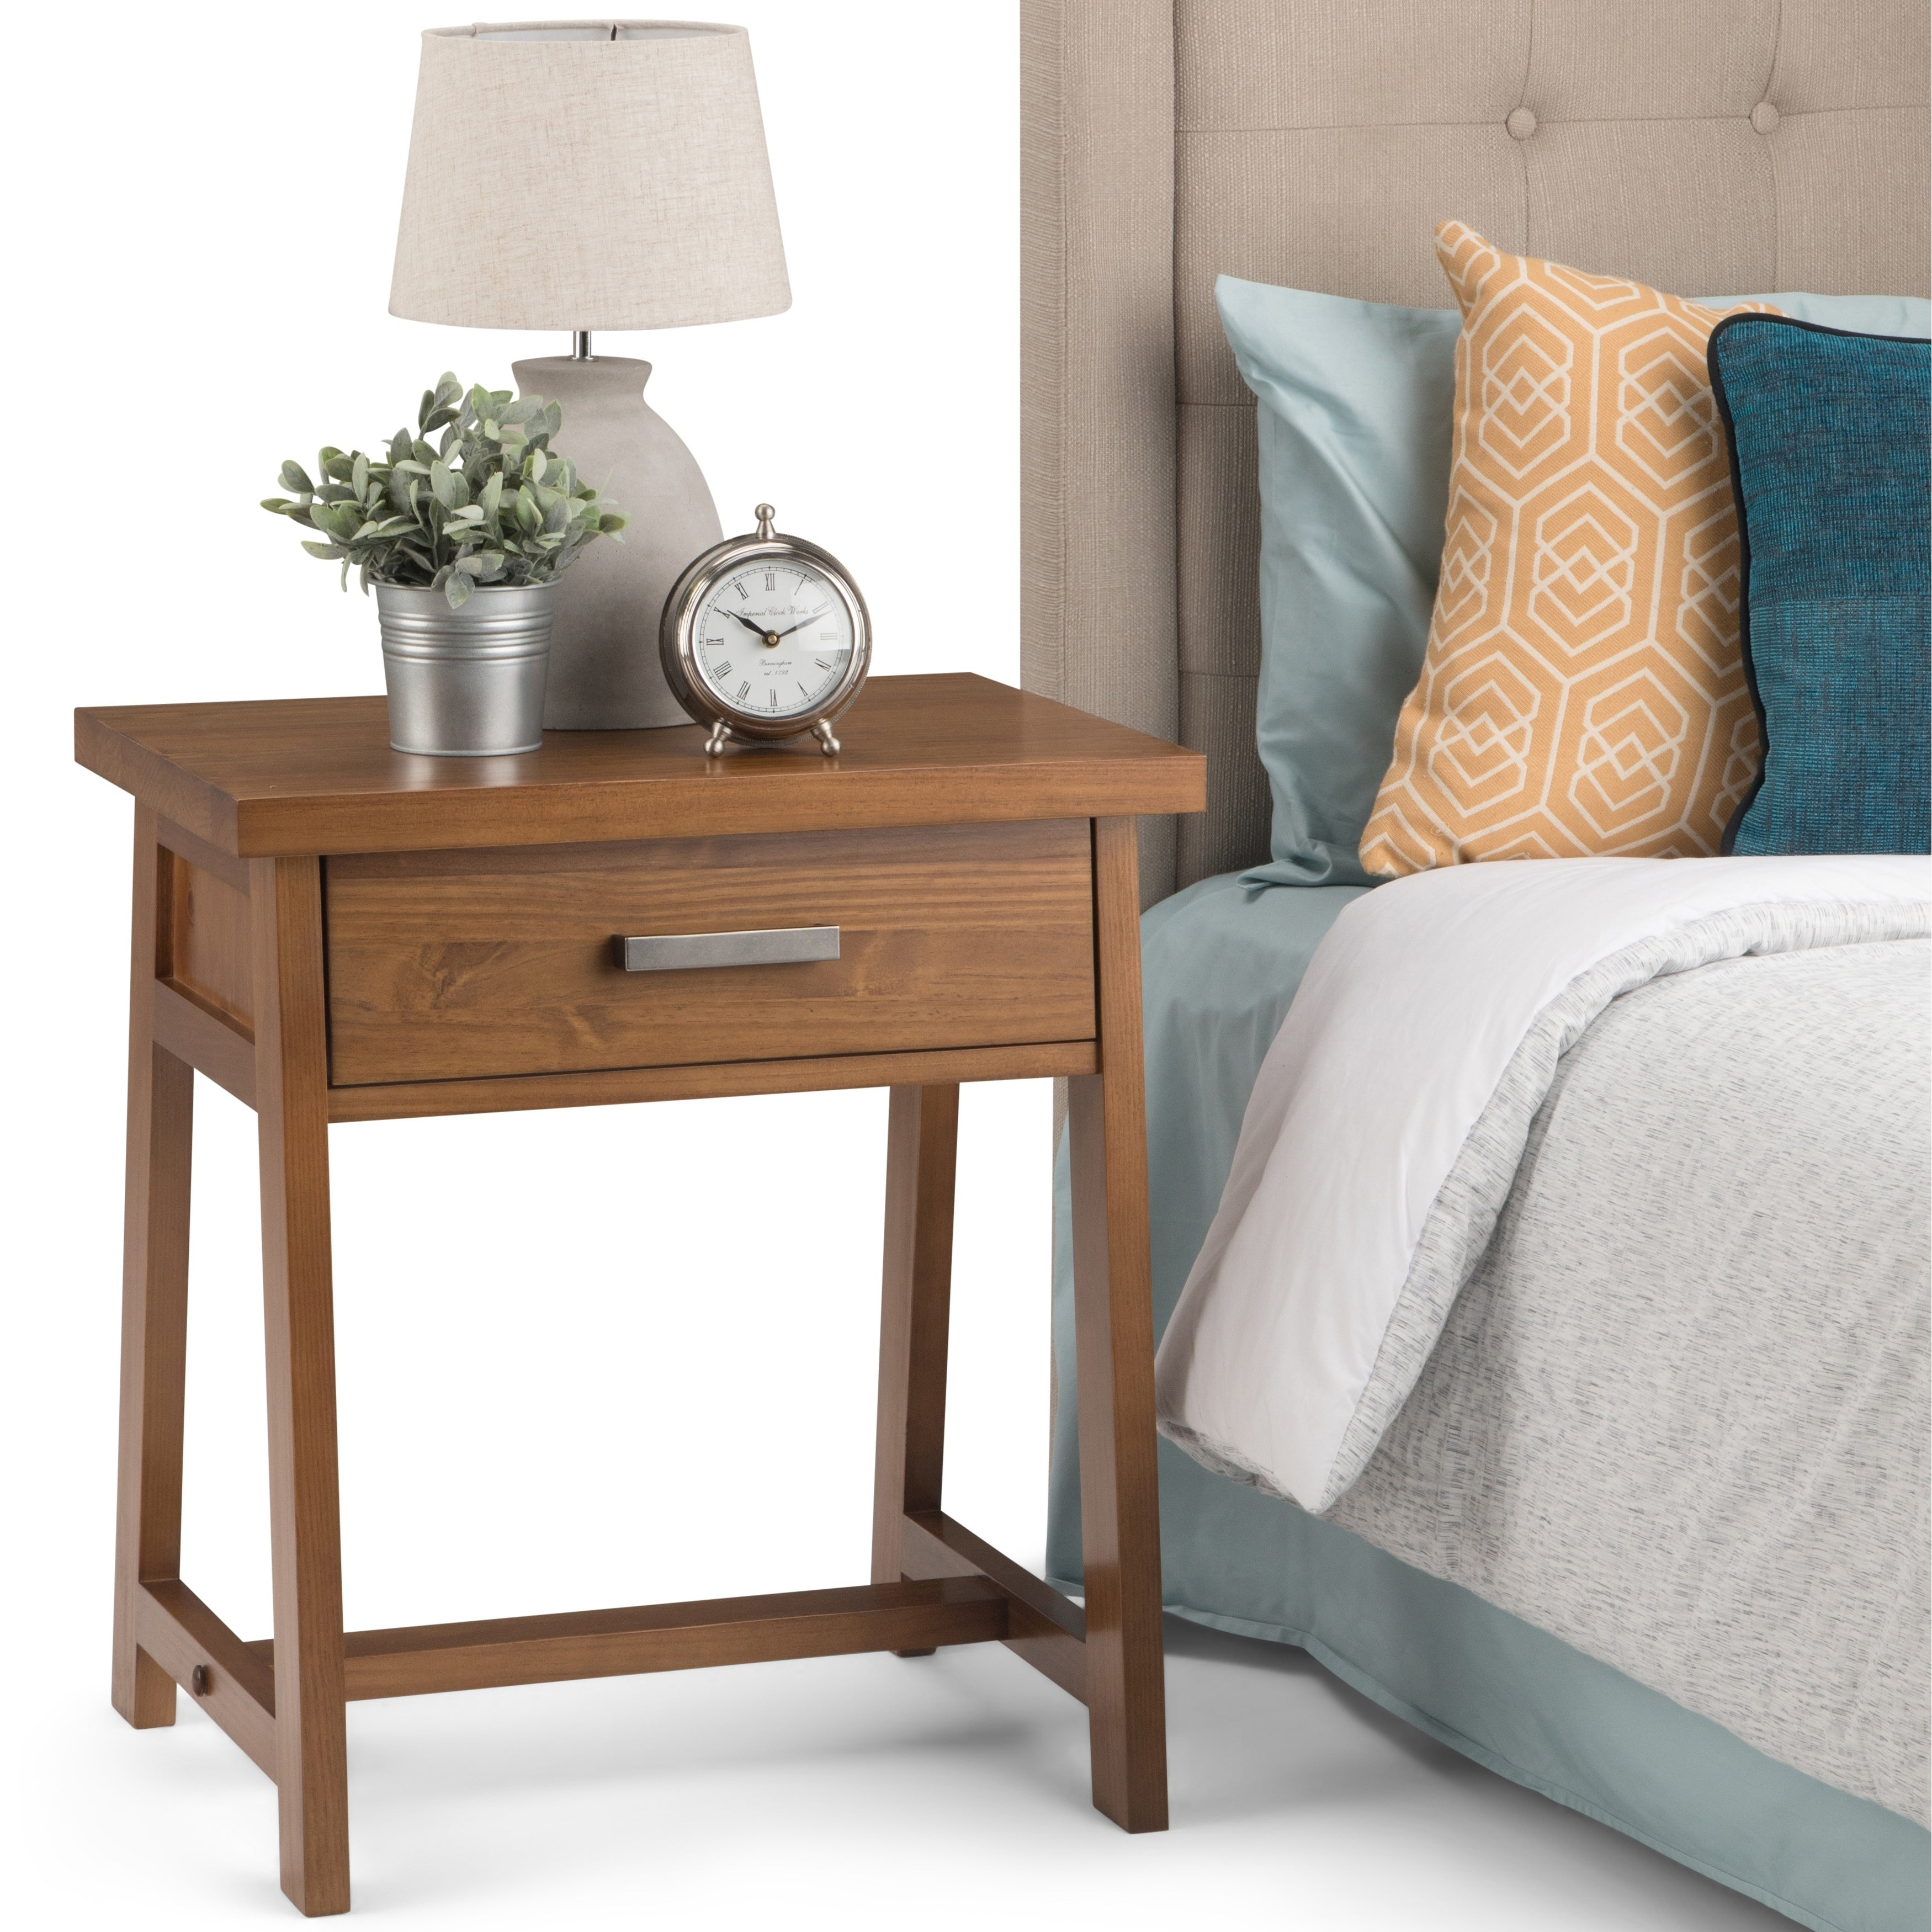 Wyndenhall Hawkins Solid Wood 24 Inch Wide Modern Industrial Bedside Nightstand Table